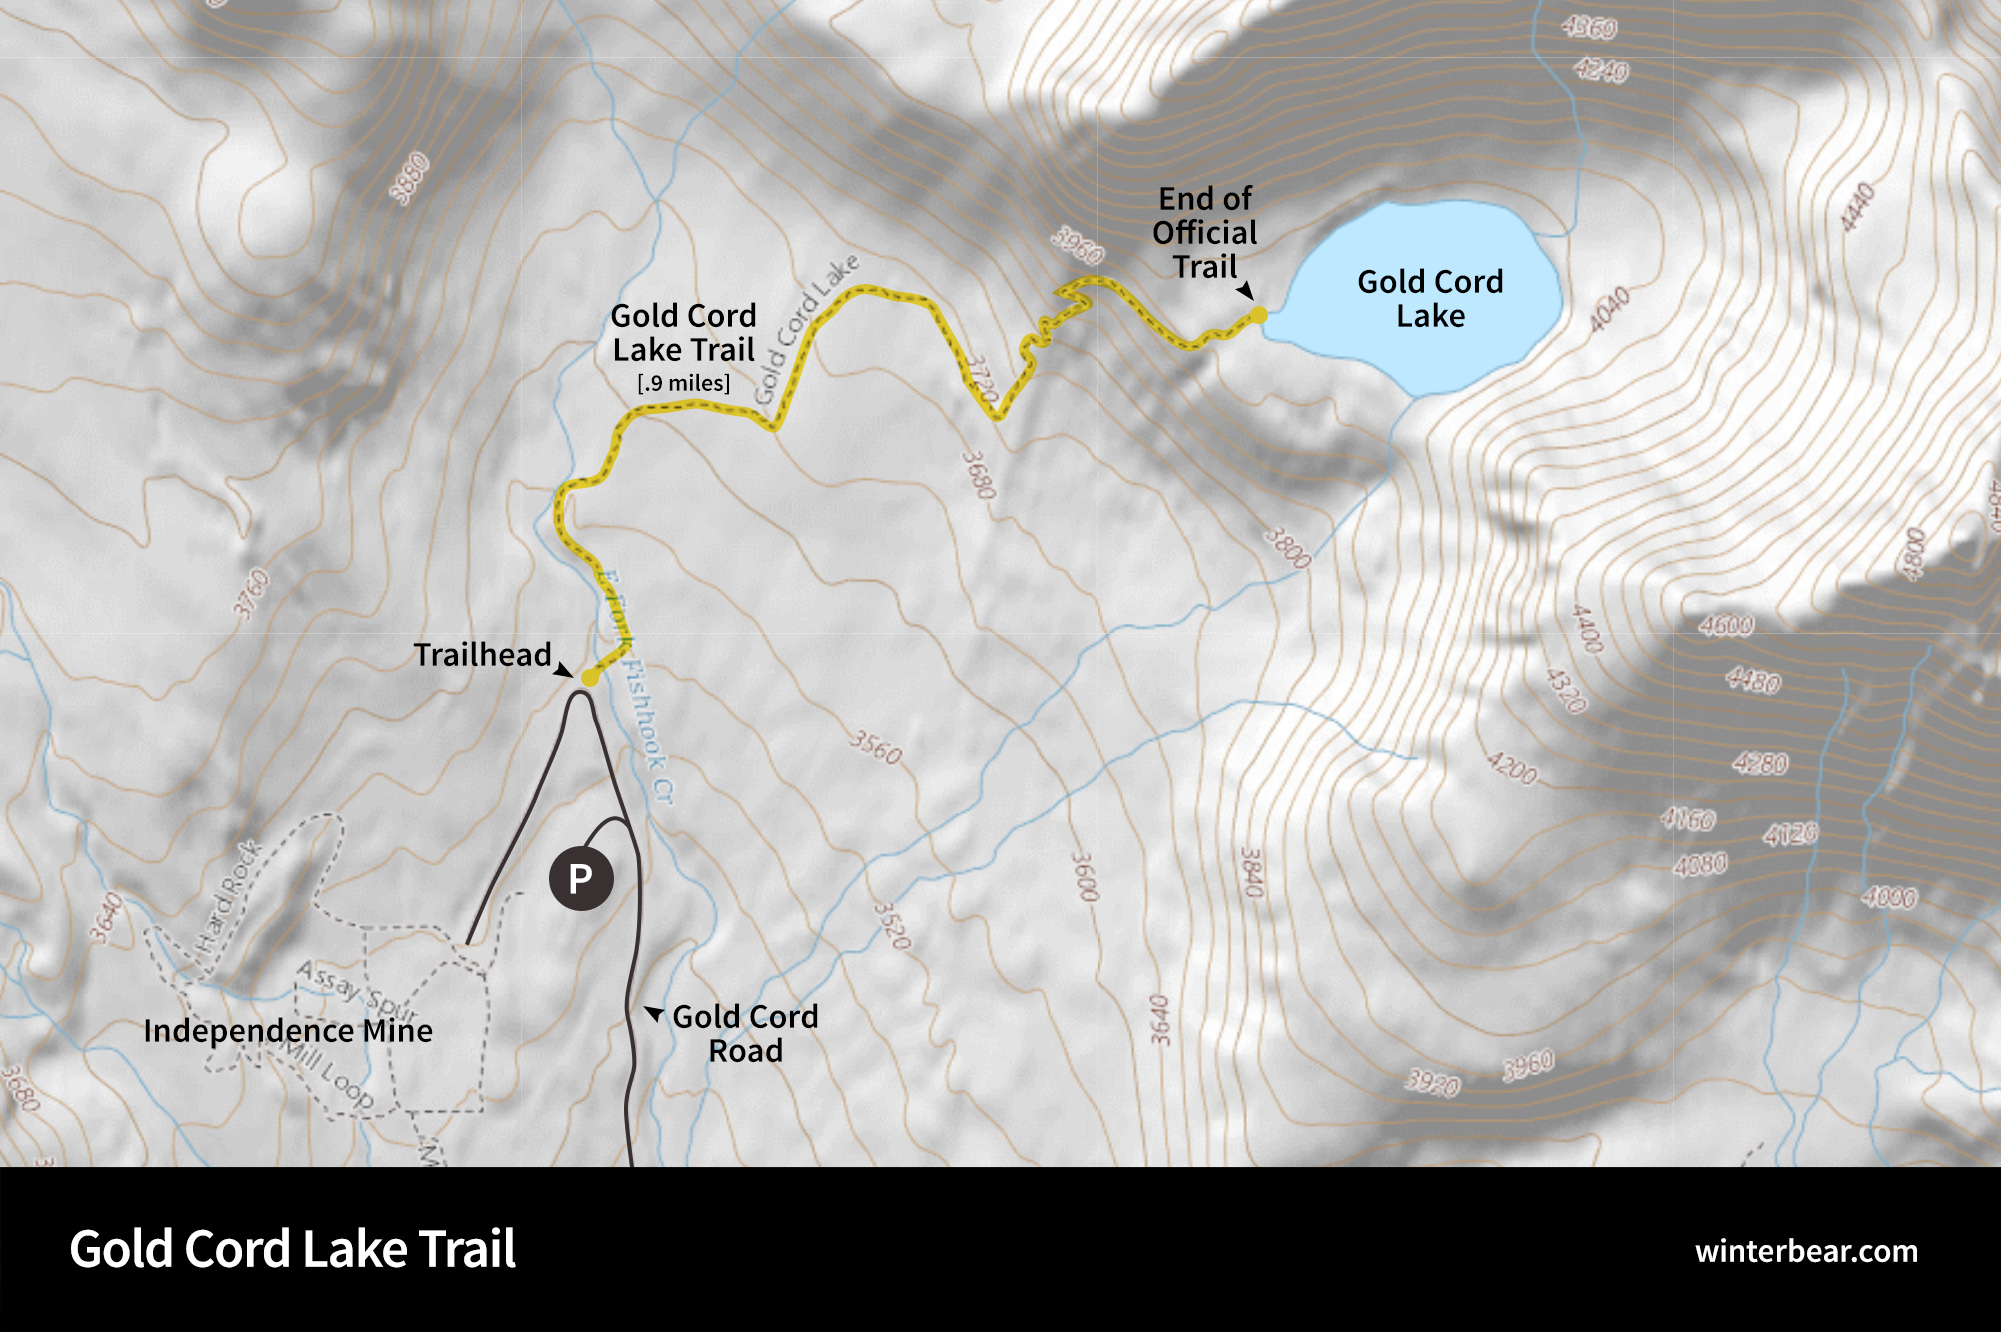 Map of the Gold Cord Lake Trail